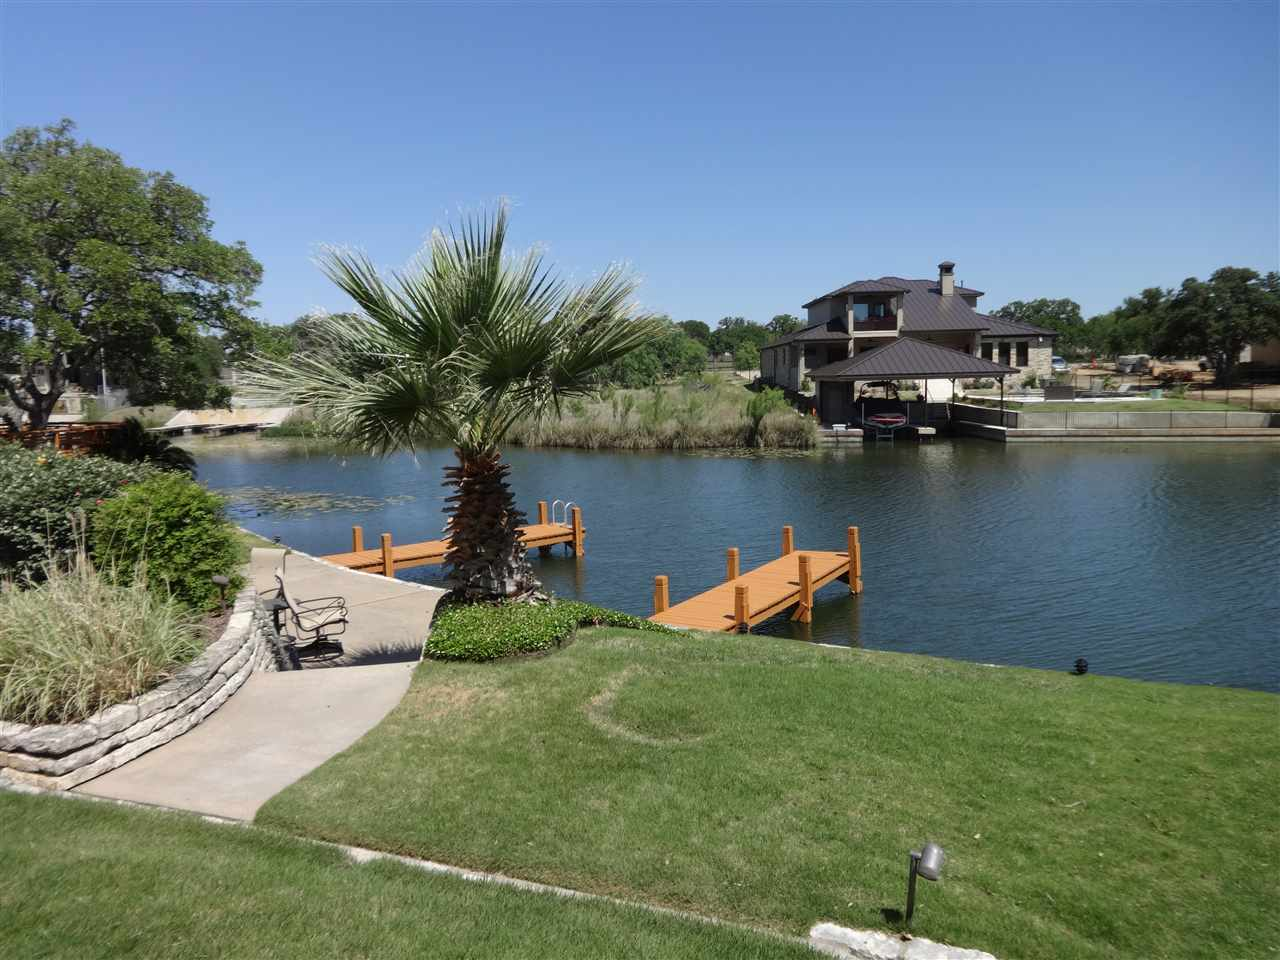 Condominium for Sale at 2512 Diagonal #2 Horseshoe Bay, Texas 78657 United States